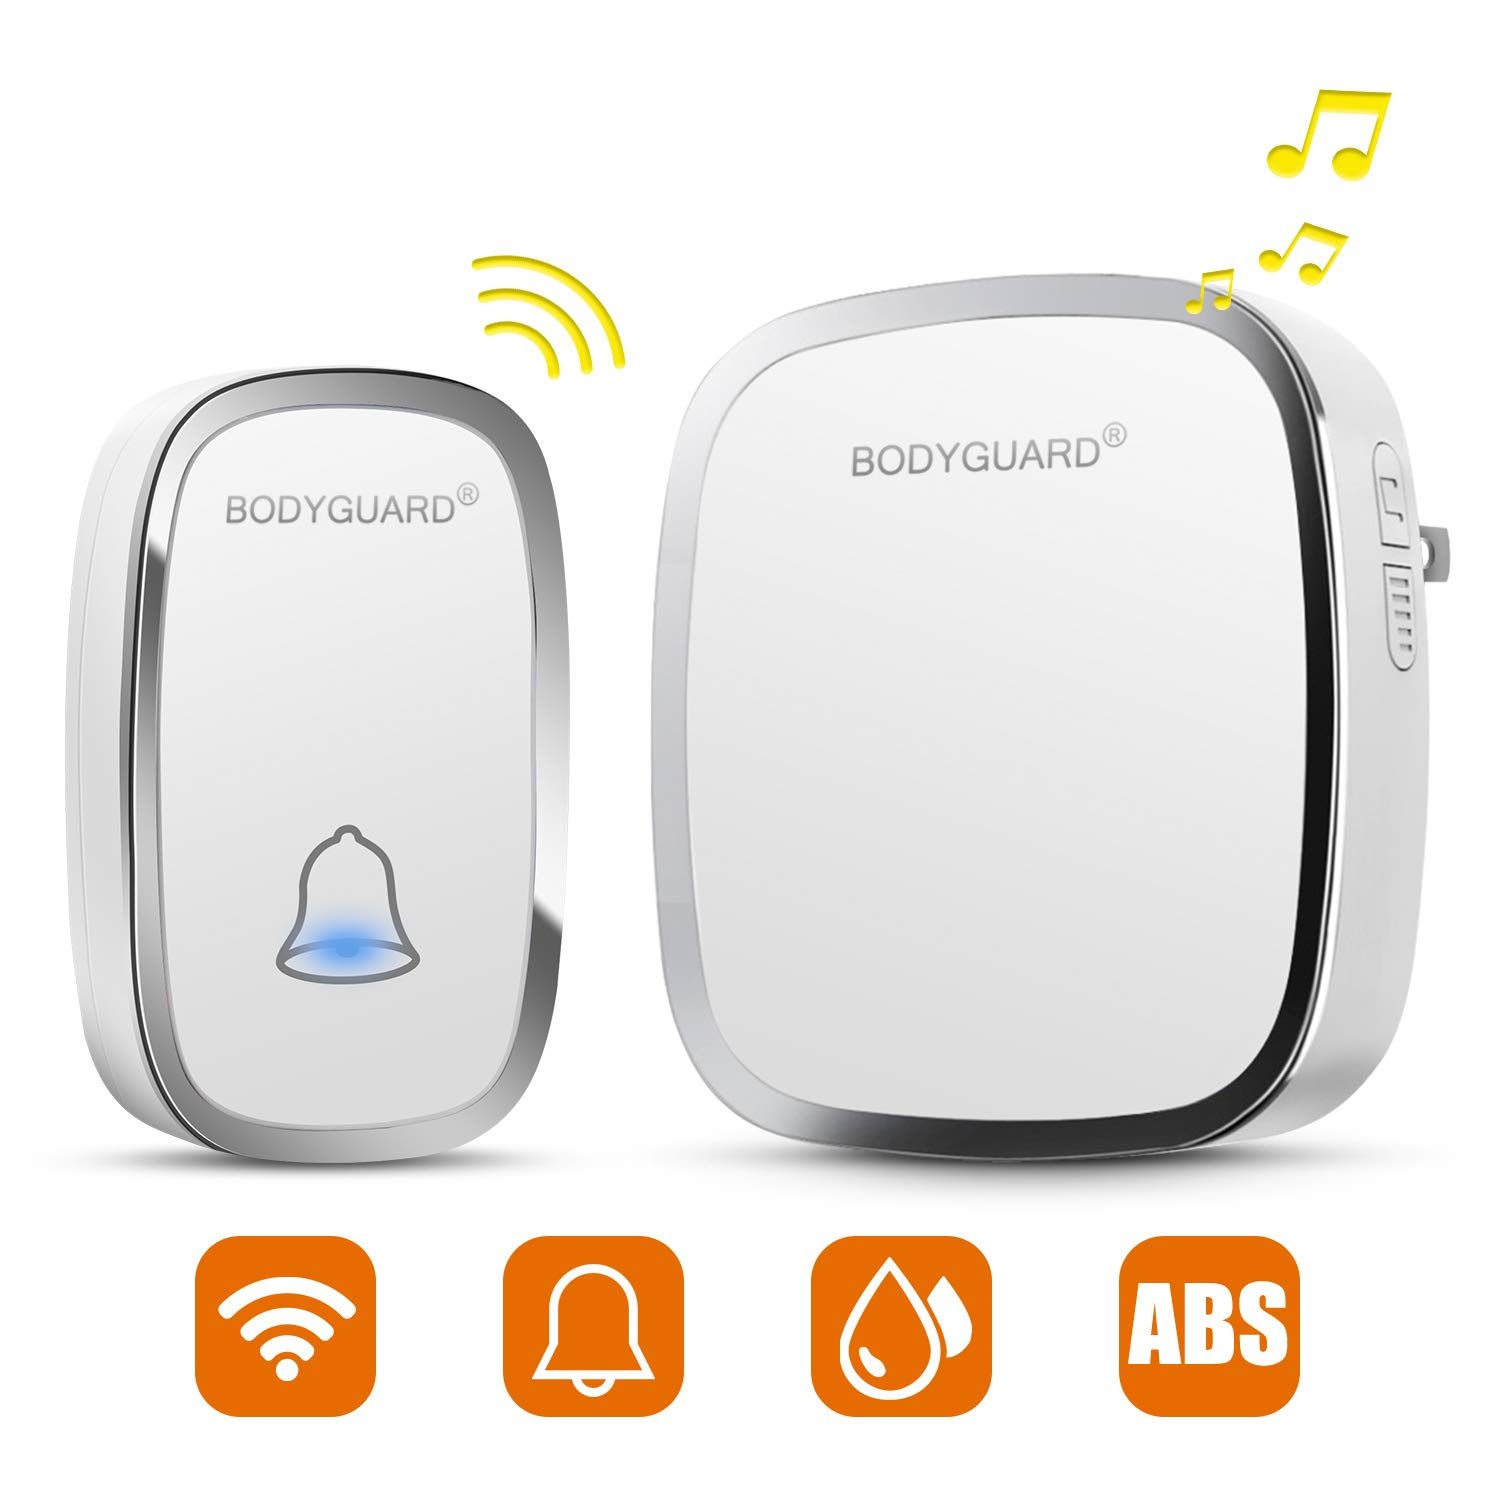 Bodyguard Wireless Doorbell with 1 Remote Button (Battery included) and 1 plug-in Receivers Operating at 1000 Feet, Over 36 Chimes, 4 Level Volume LED Flash (White)